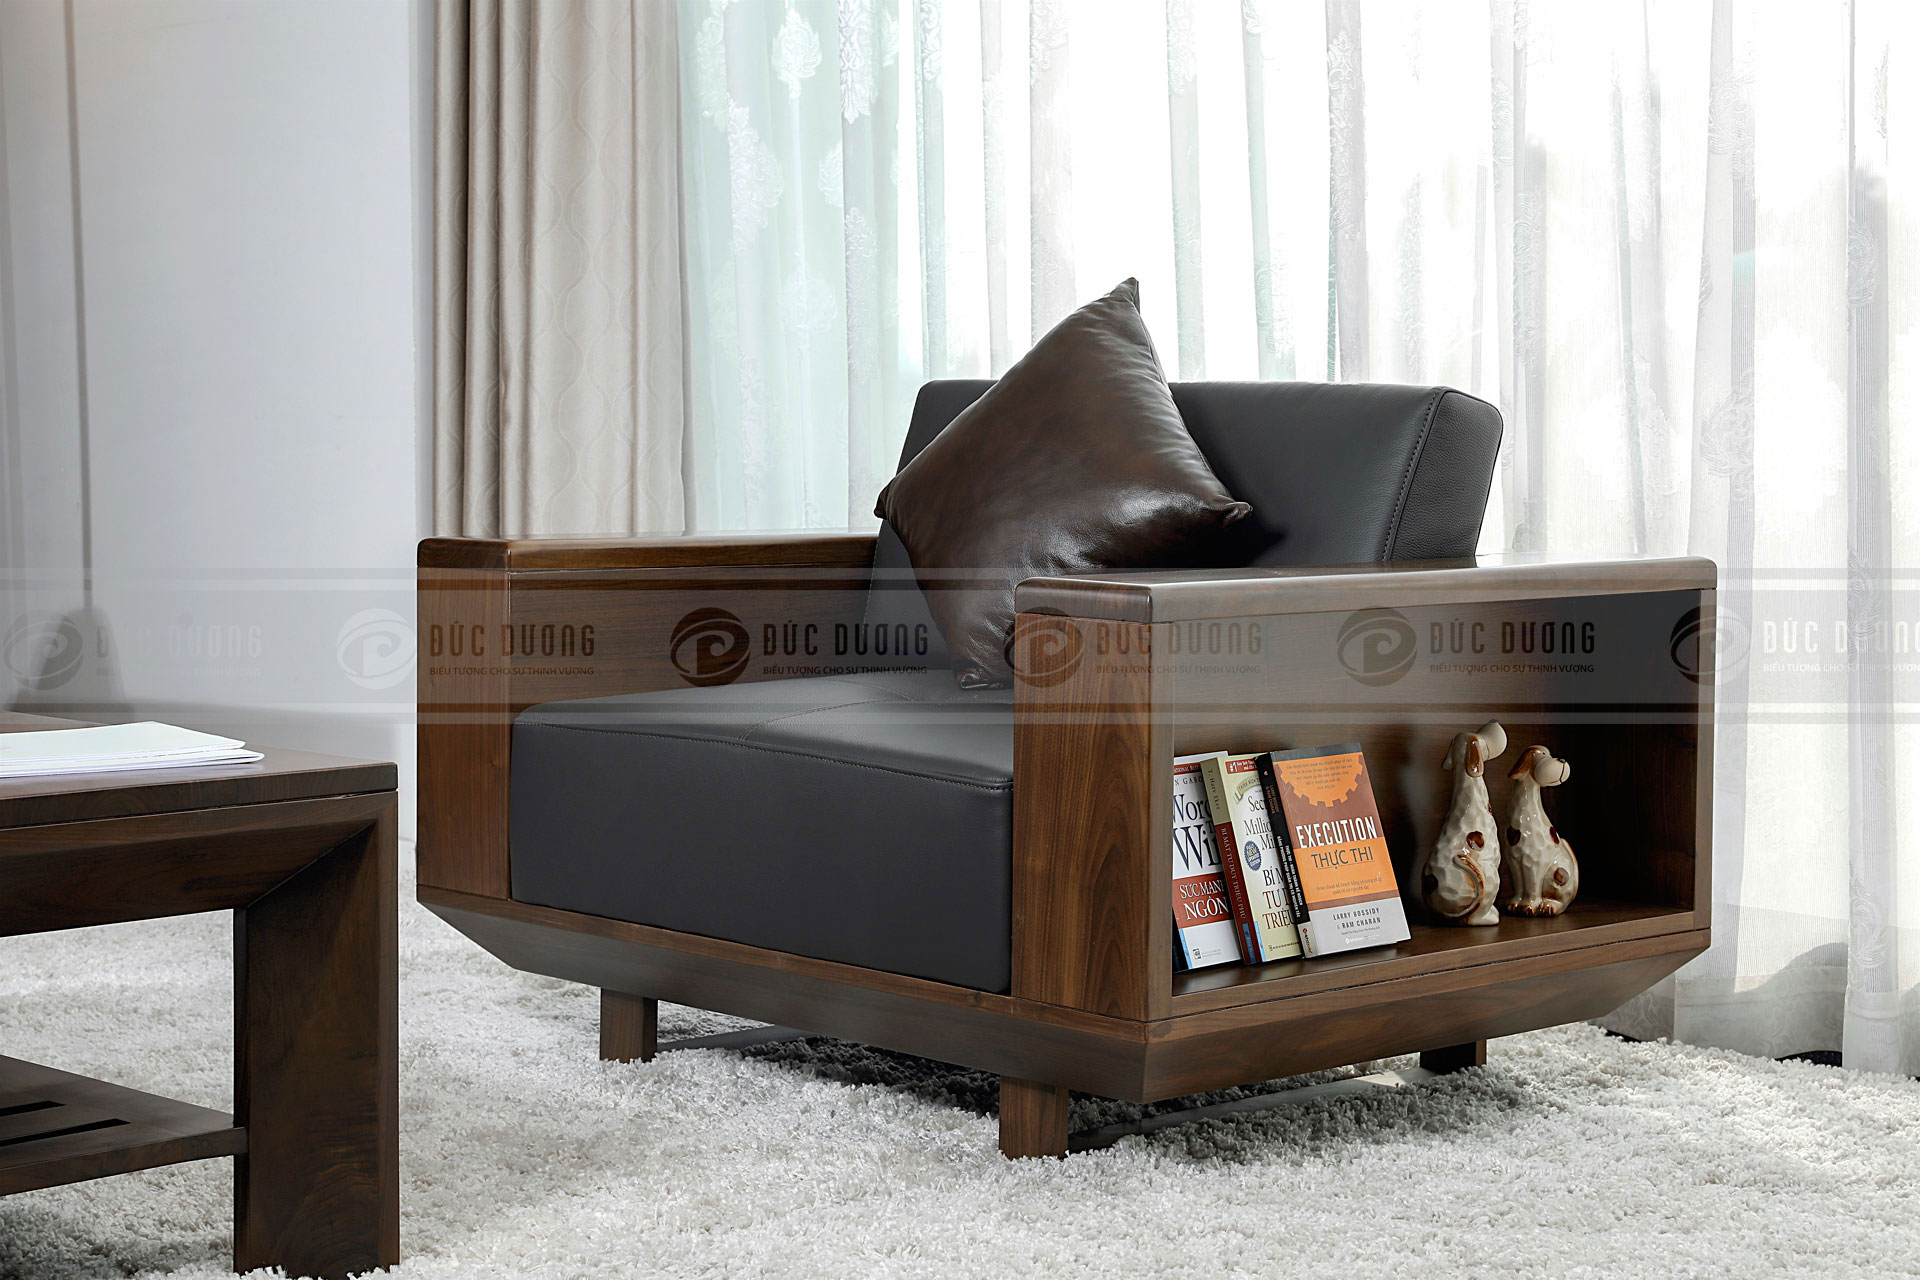 Bộ sofa Luxury